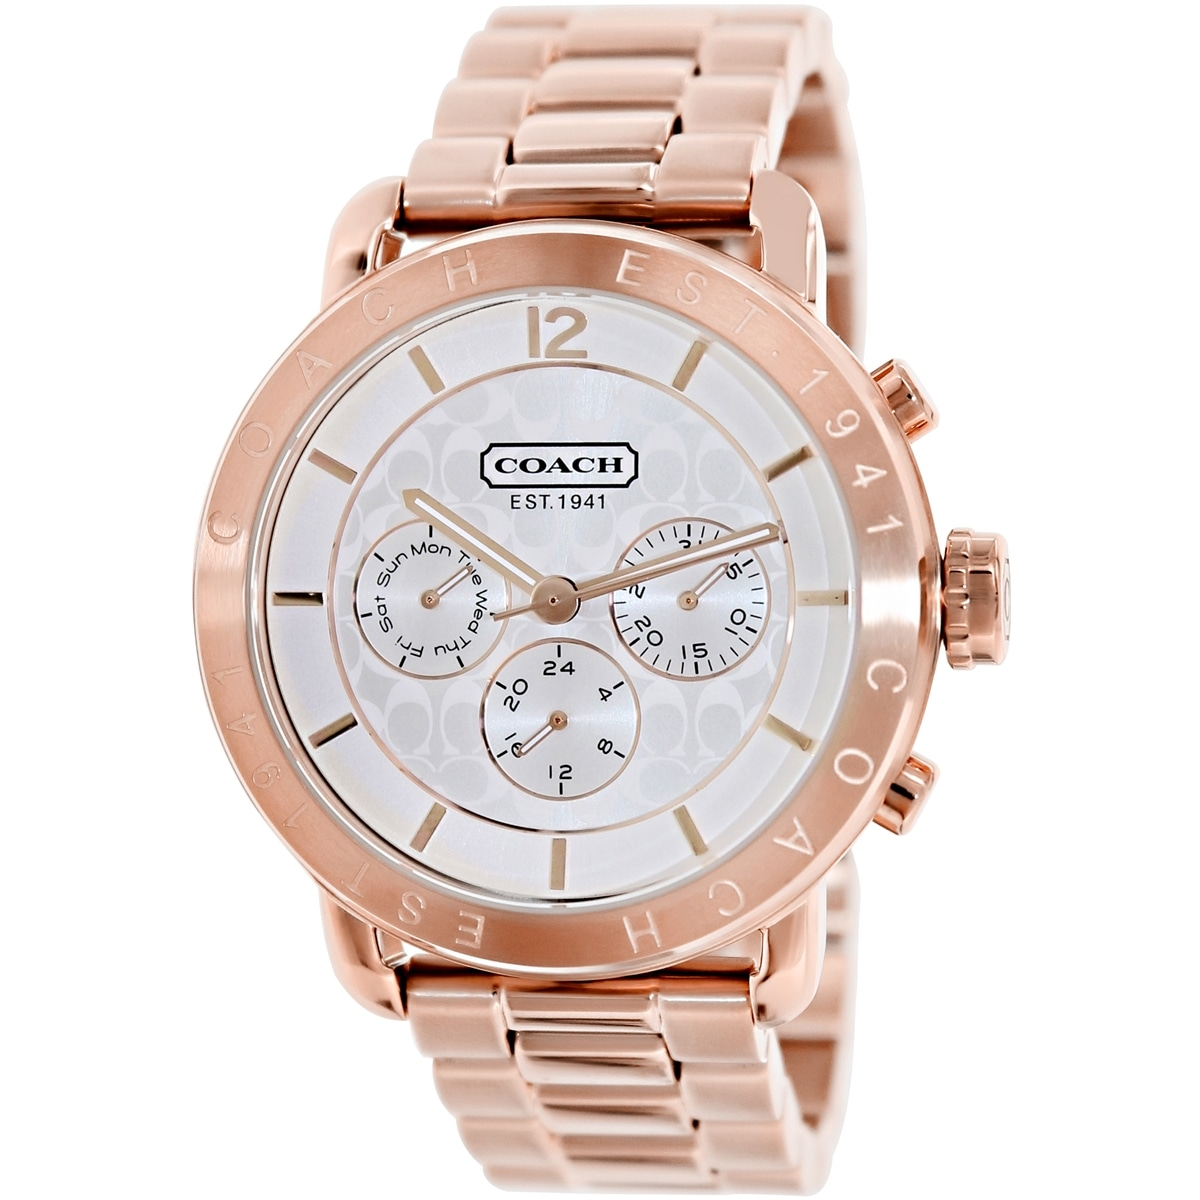 Coach Women's Legacy Sport 14501644 Rose Goldtone Stainless Steel Quartz Watch with Silvertone Dial